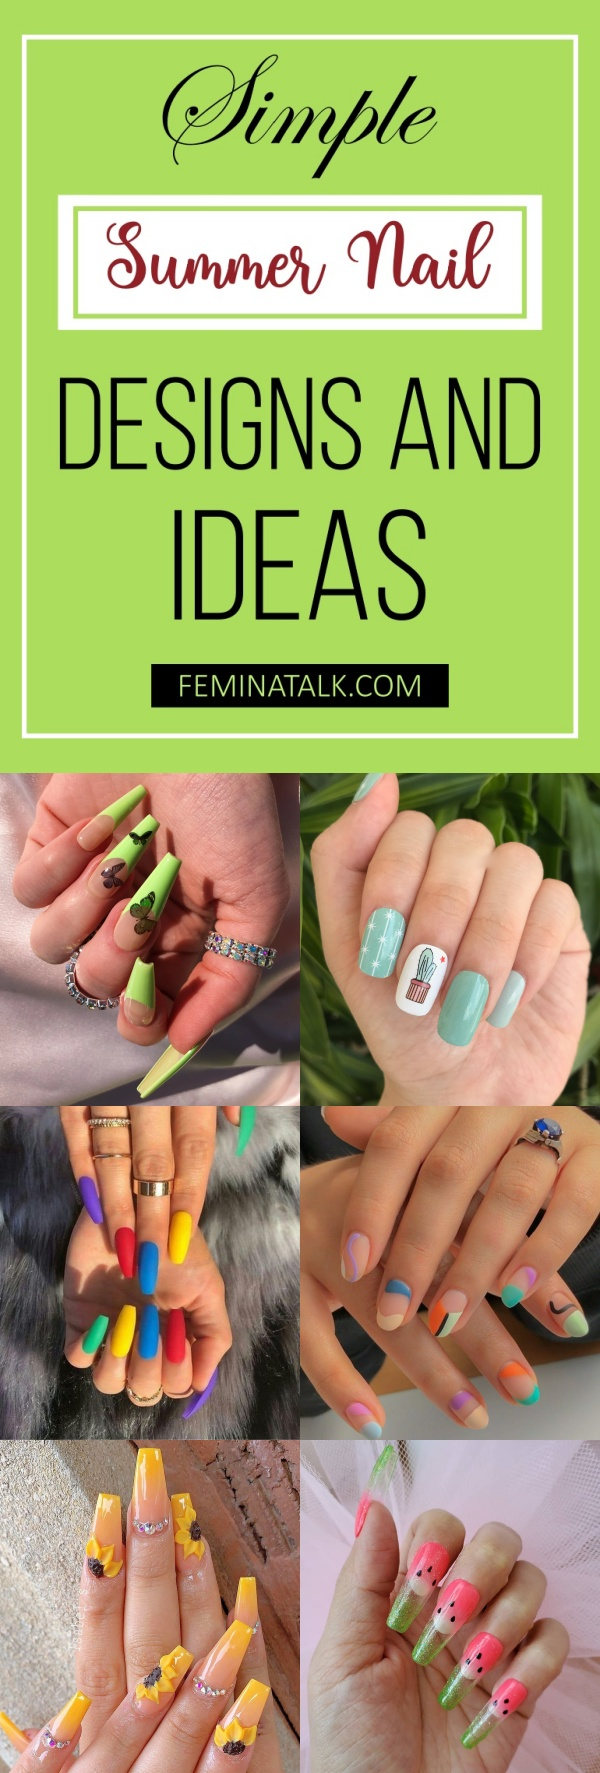 20+ Simple Summer Nail Designs and Ideas For 20 – Femina Talk